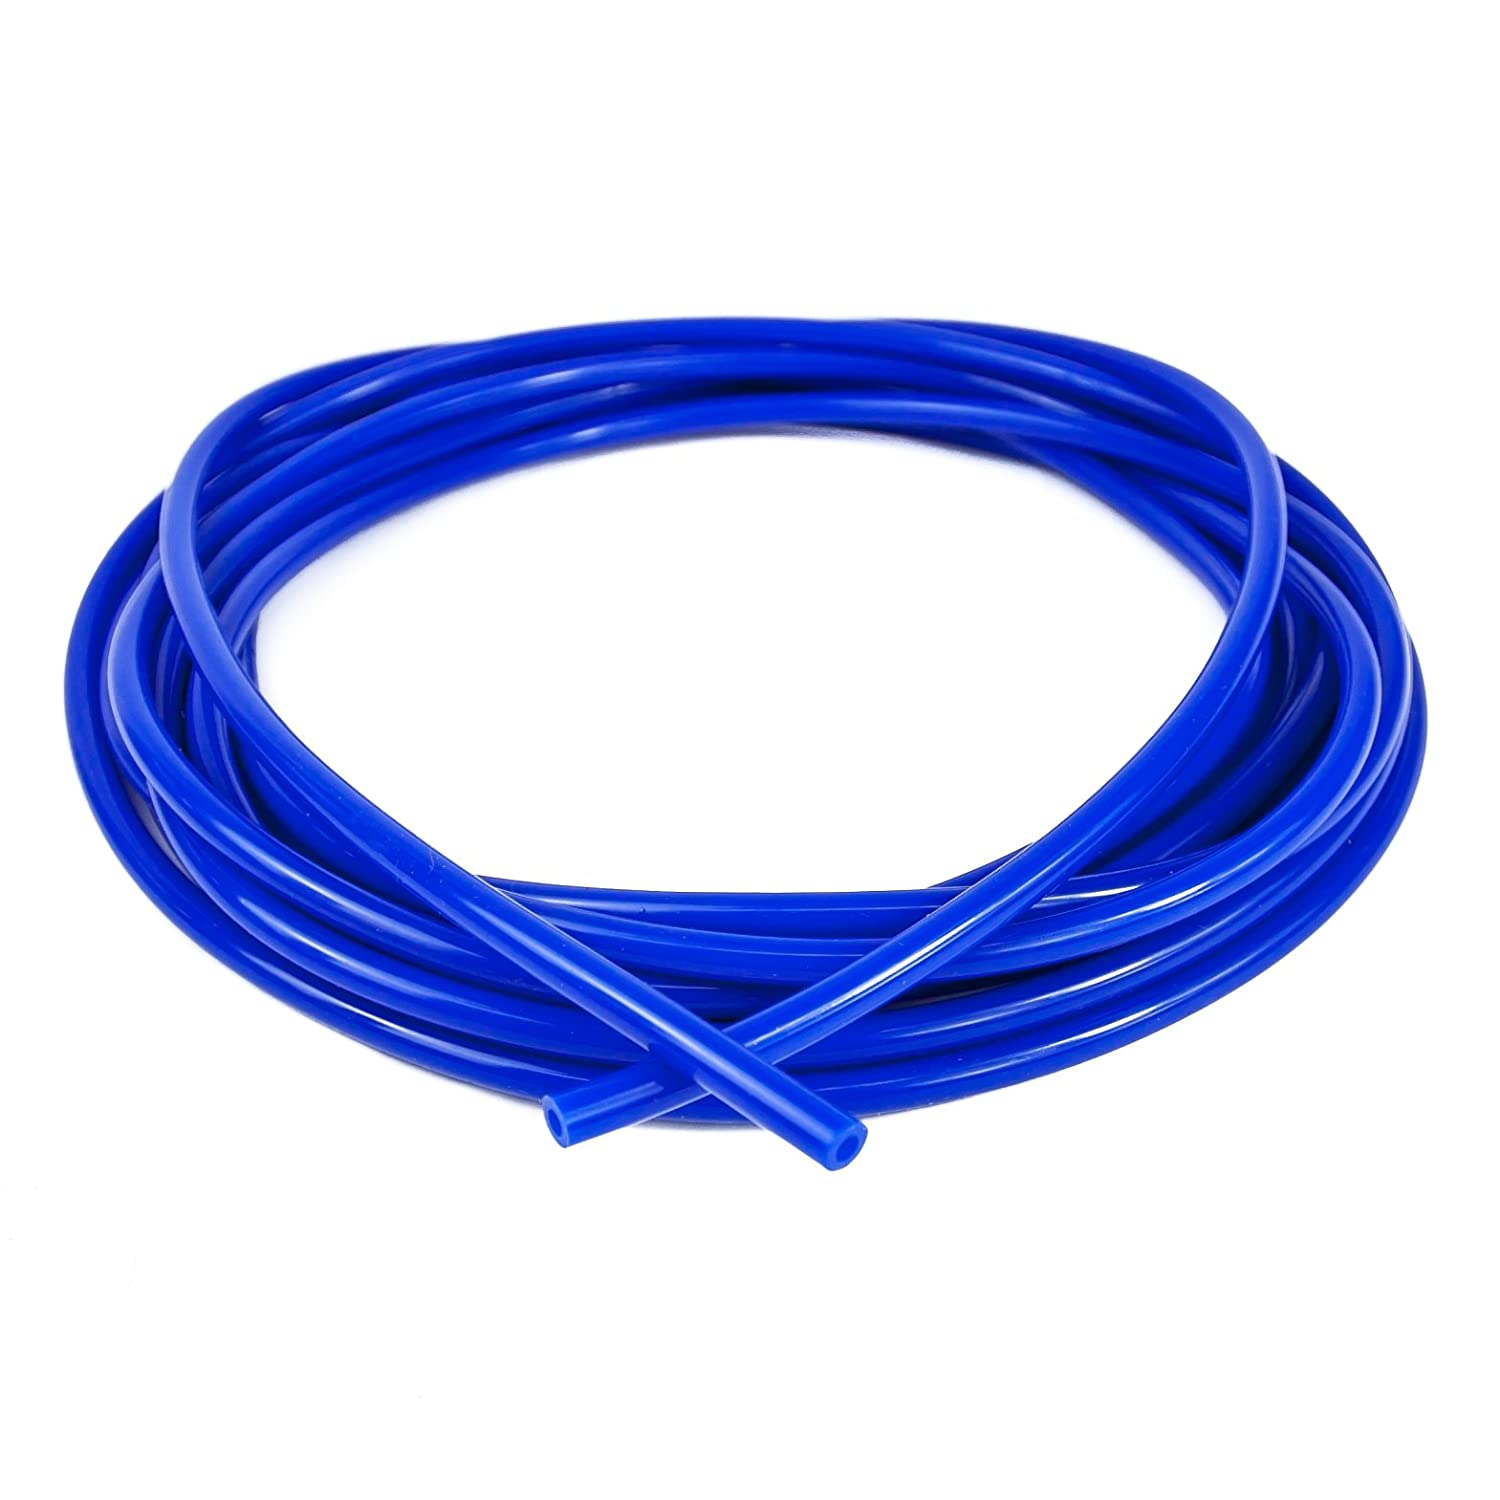 Ramair Filters VAC4MM-10M-BL Silicone Vacuum Hose, Blue, 4 mm x 10 m